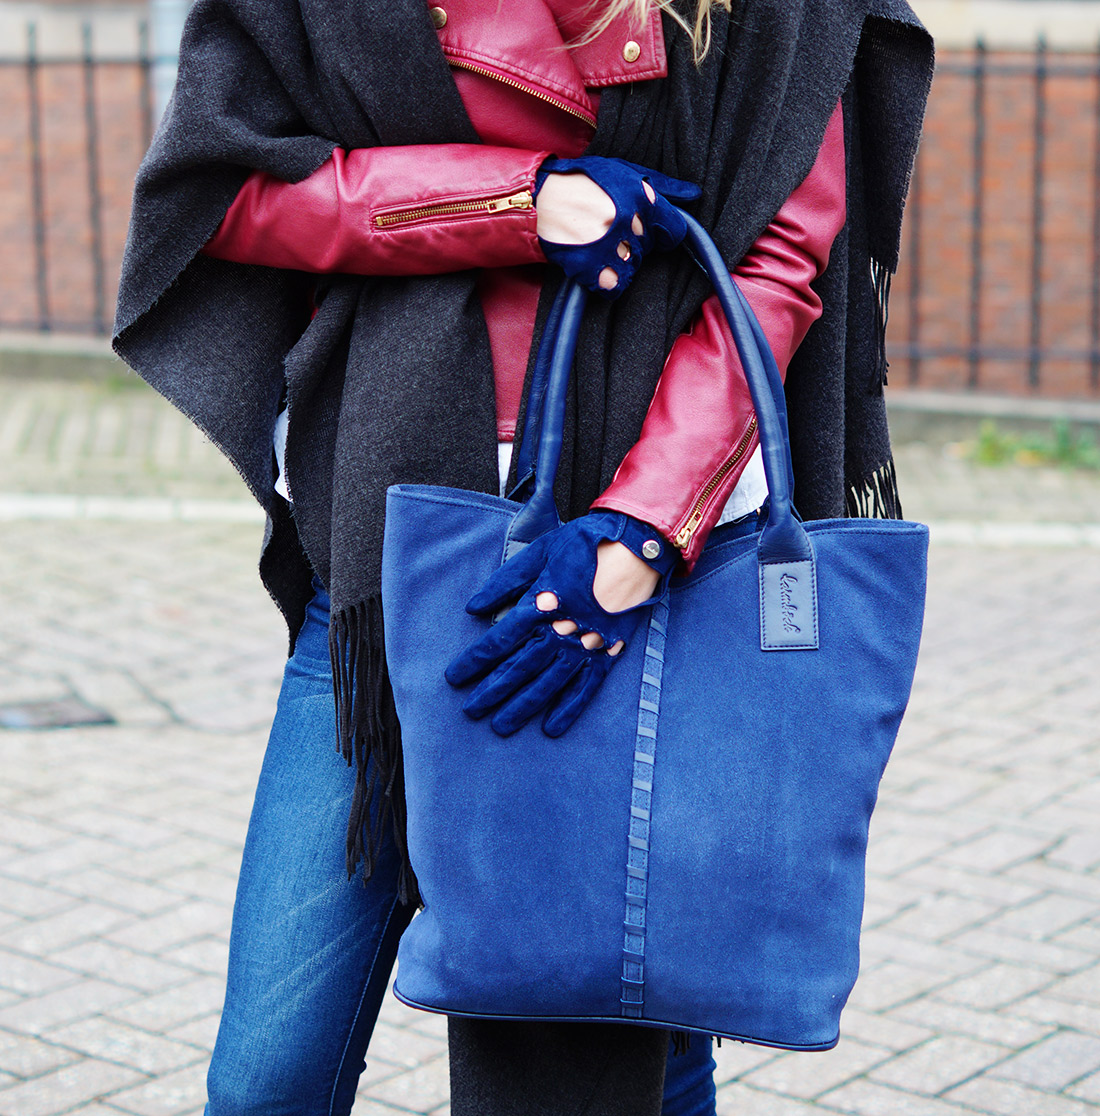 Bag-at-You---Fashion-blog---Denim-leather-jacket---Laimbock-shopper-and-gloves